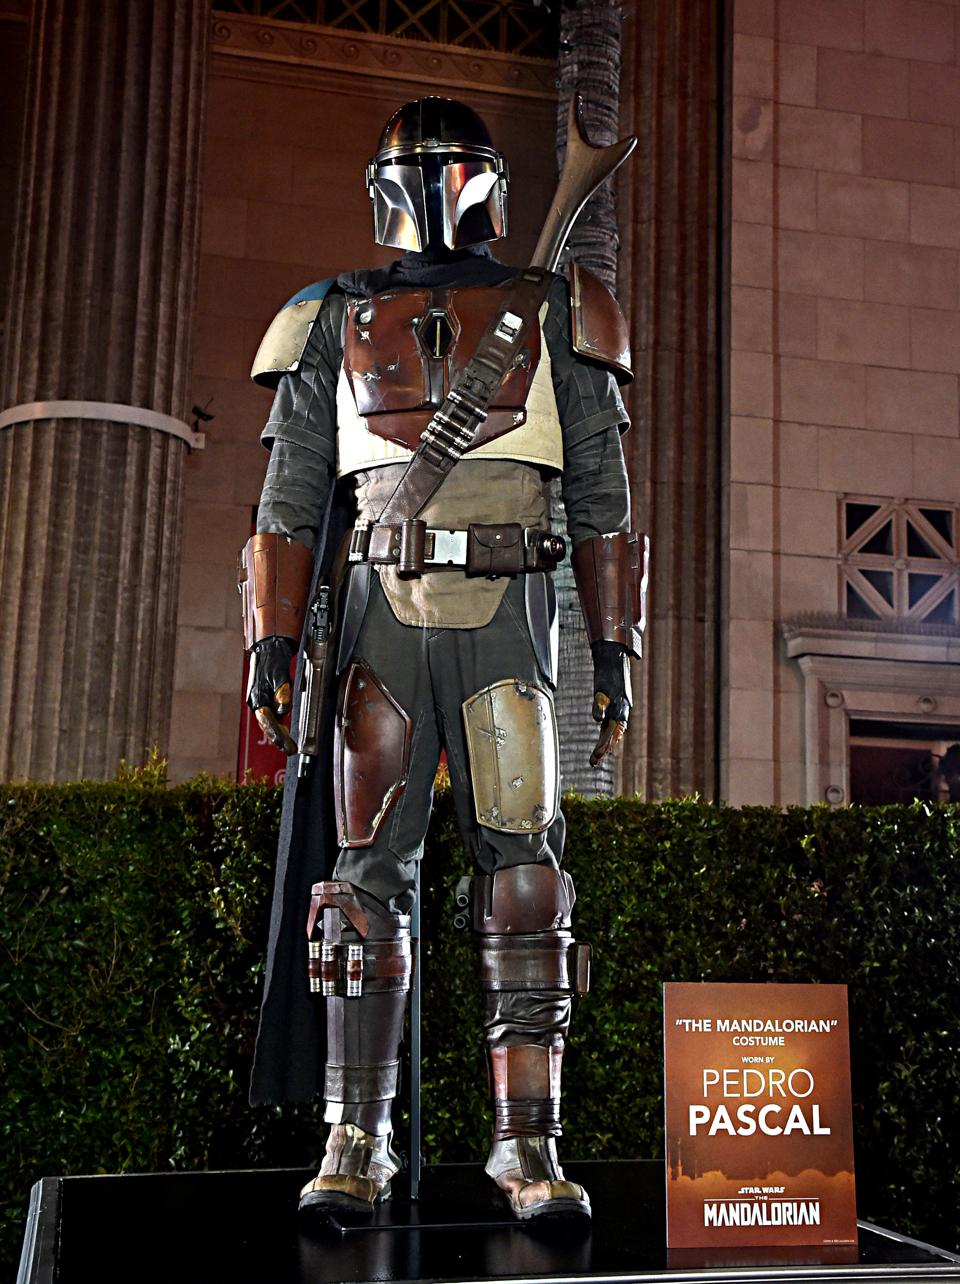 A photo of the Mandalorian suit of armor